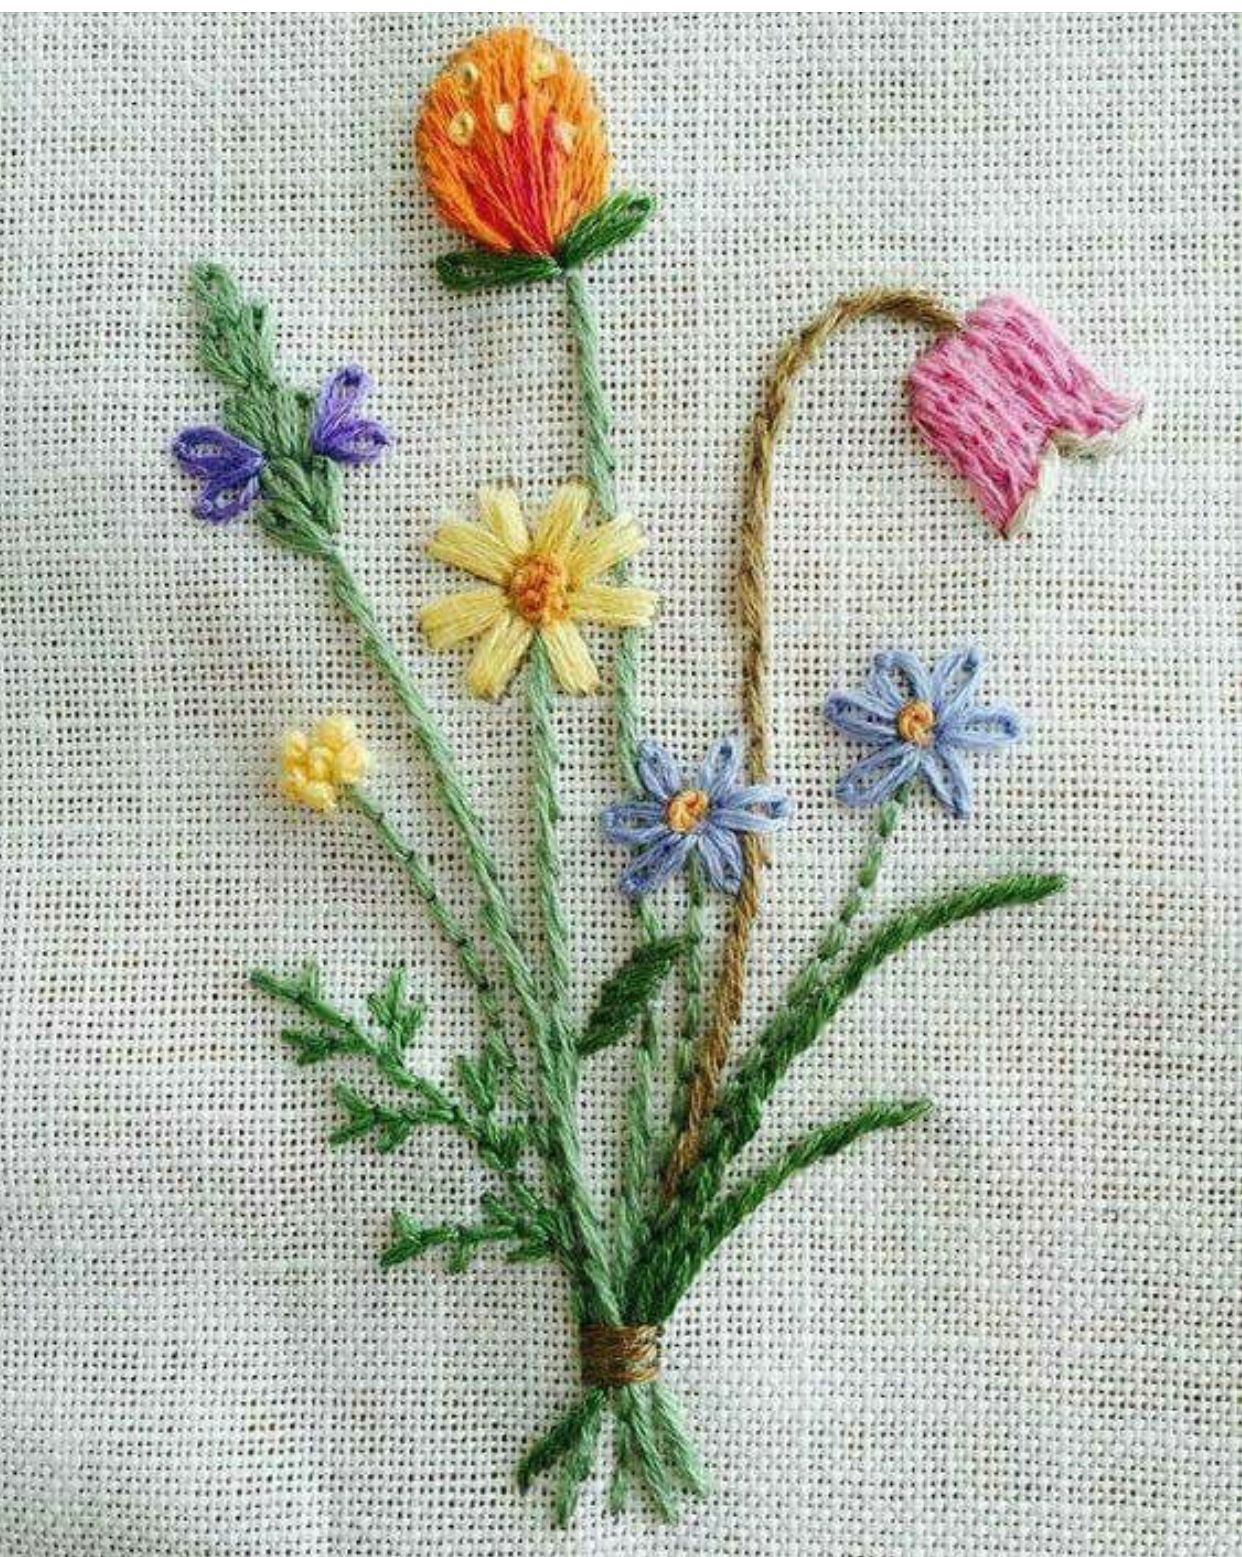 Pin by manjula nazare on embroidery pinterest embroidery hand